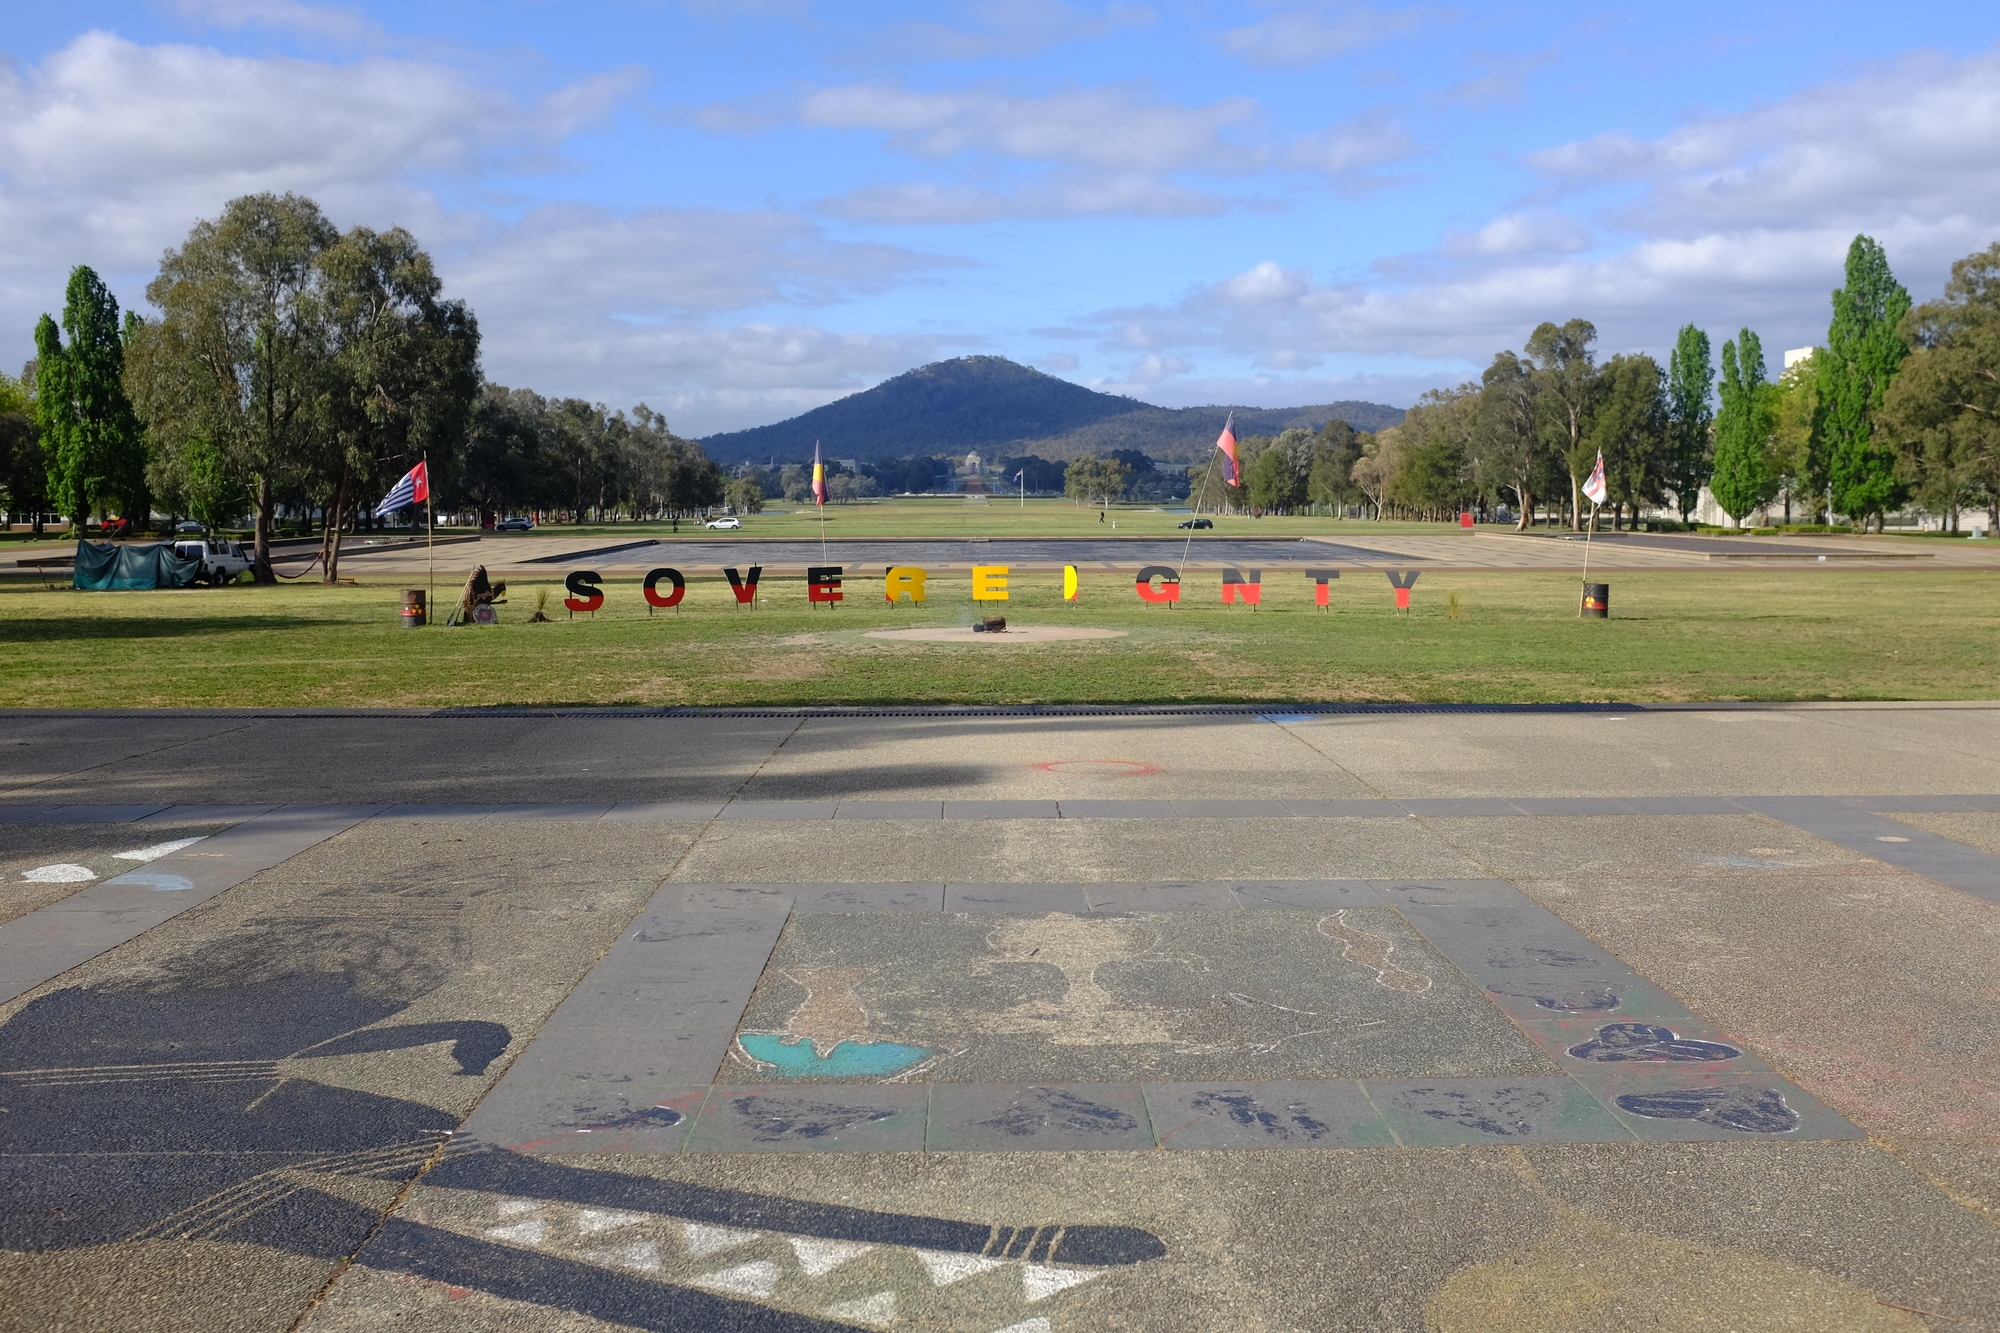 looking towards mount Ainslie from the forecourt of old parliament house